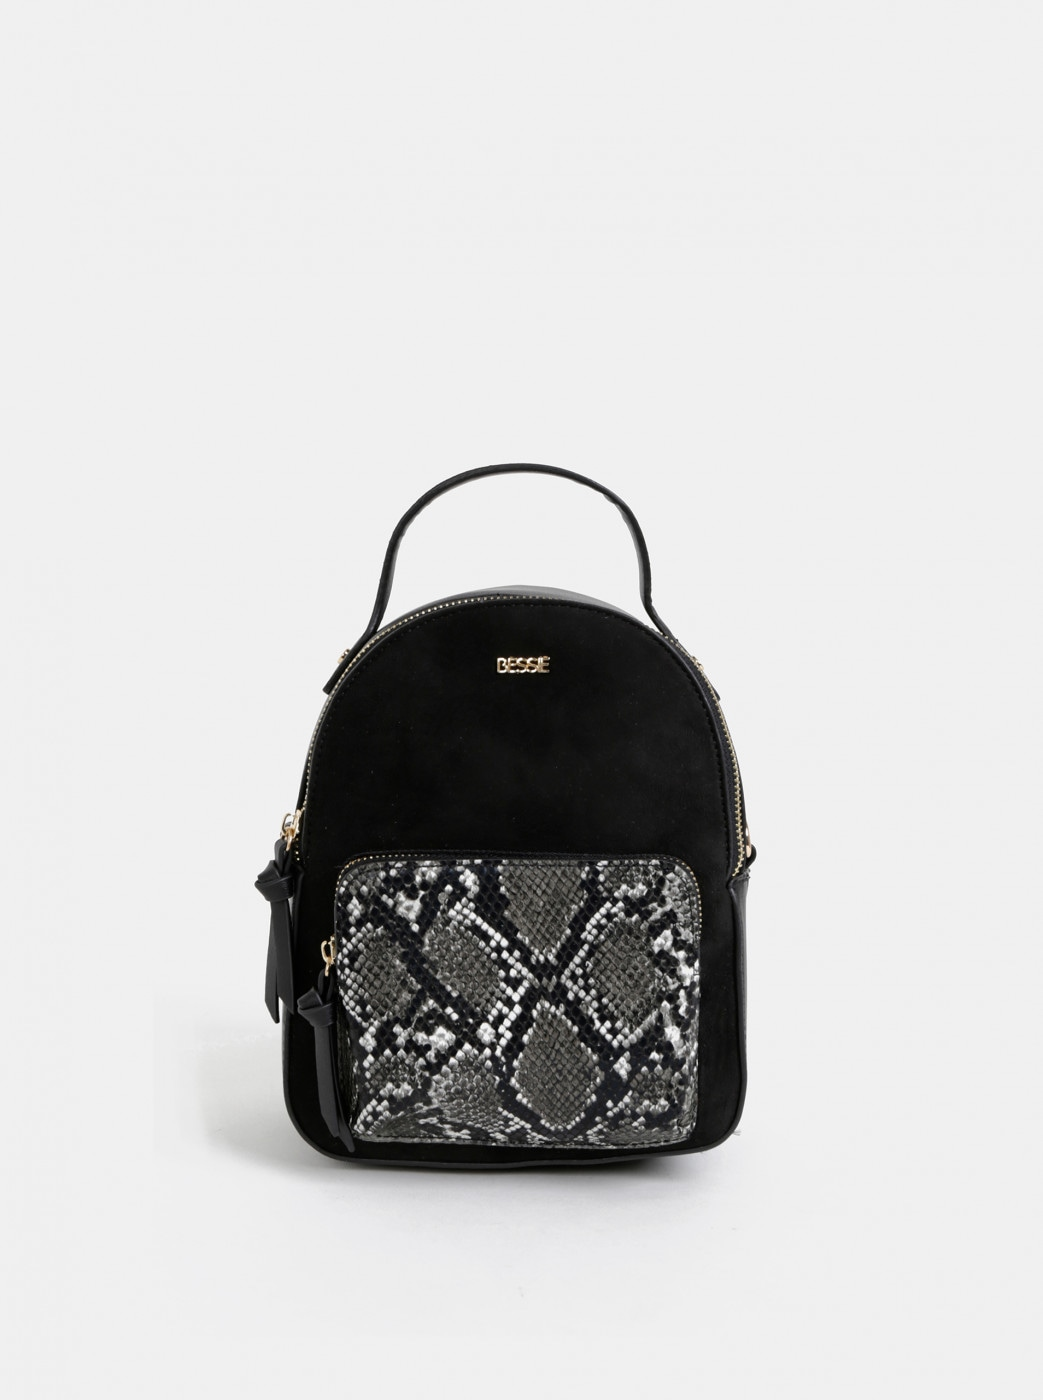 Black snake-patterned backpack with suede detail bessie London